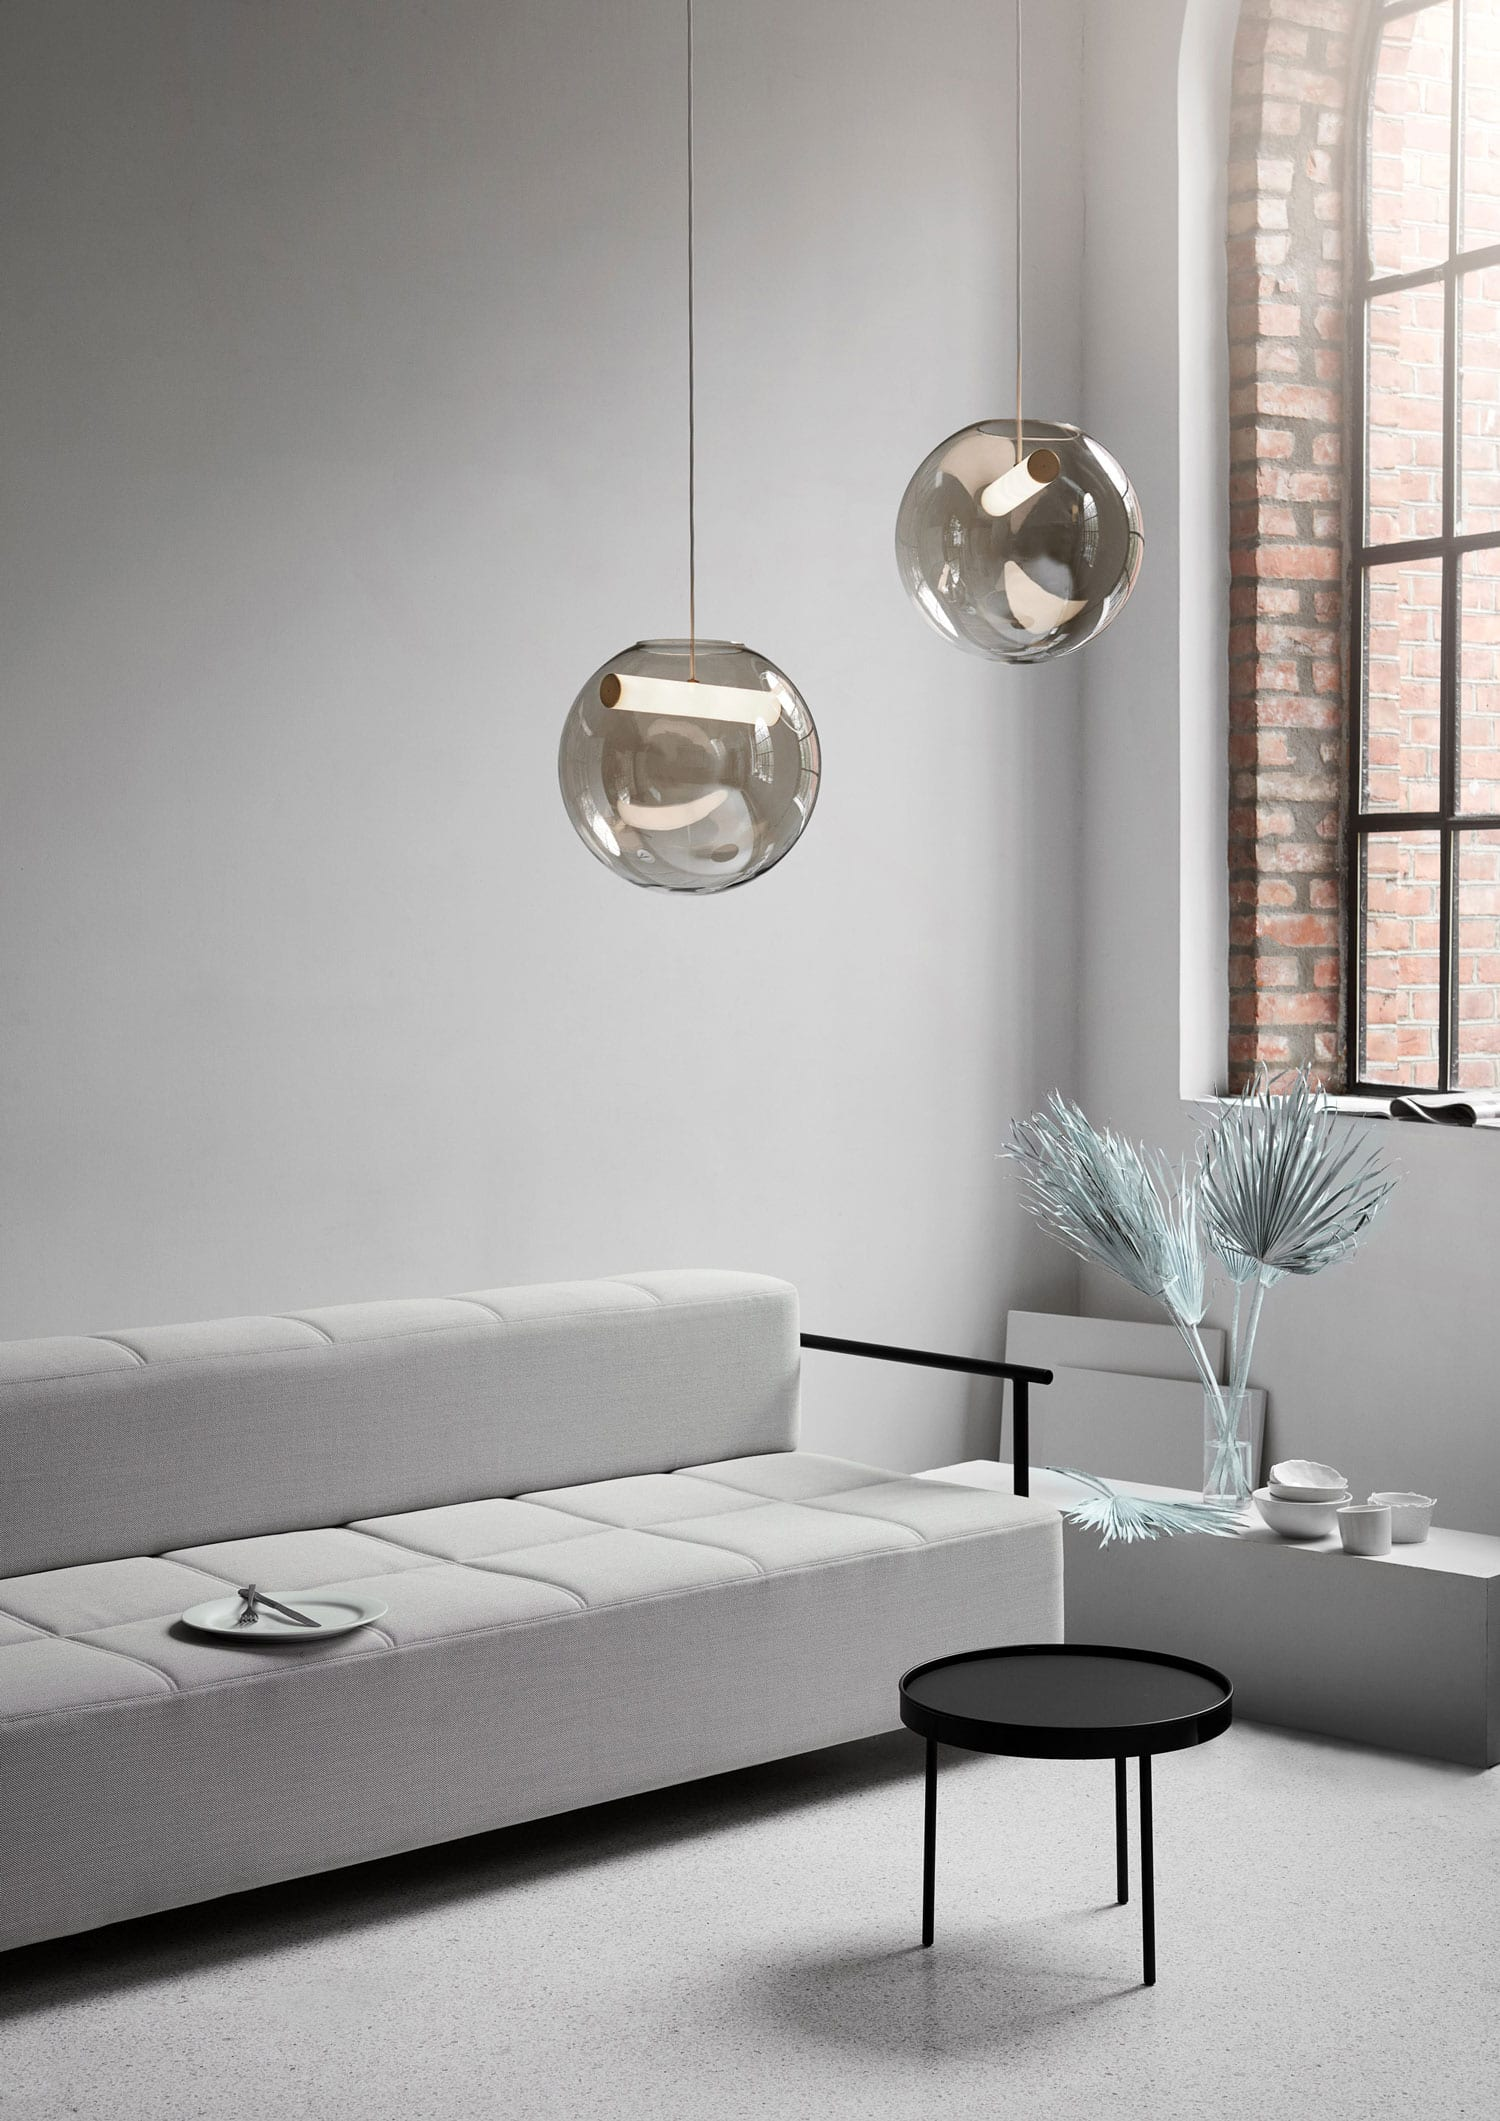 Reveal Pendant Lamp by Silje Nesdal for Northern at Imm Cologne 2019   Yellowtrace